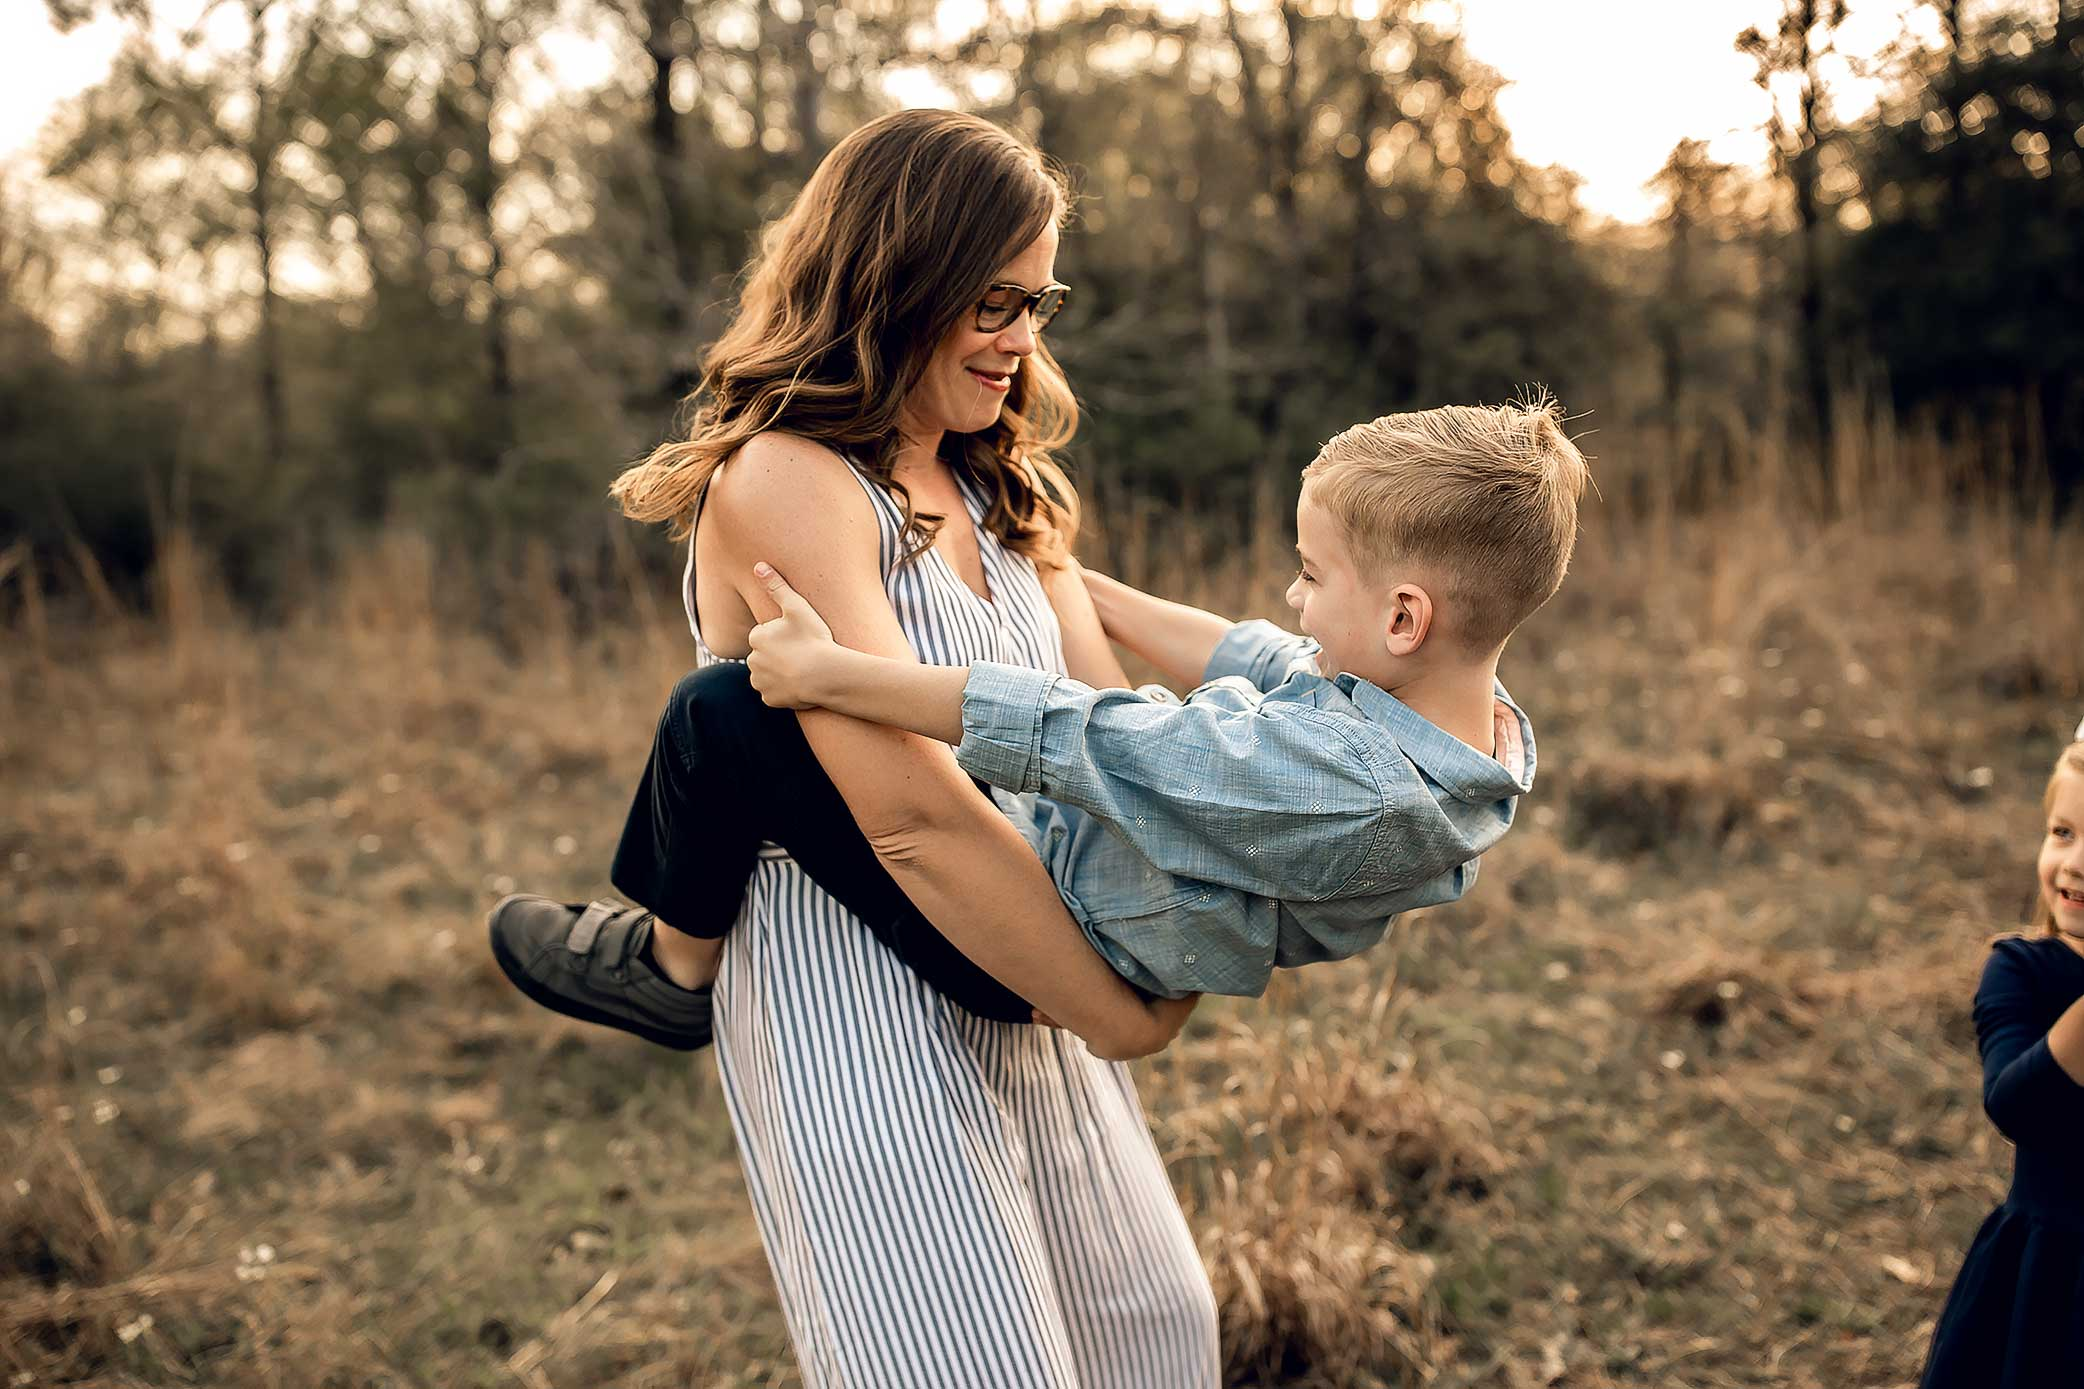 shelby-schiller-photography-lifestyle-family-session-with-3-kids-spring-2019-green-blue-yellow-college-station-10.jpg